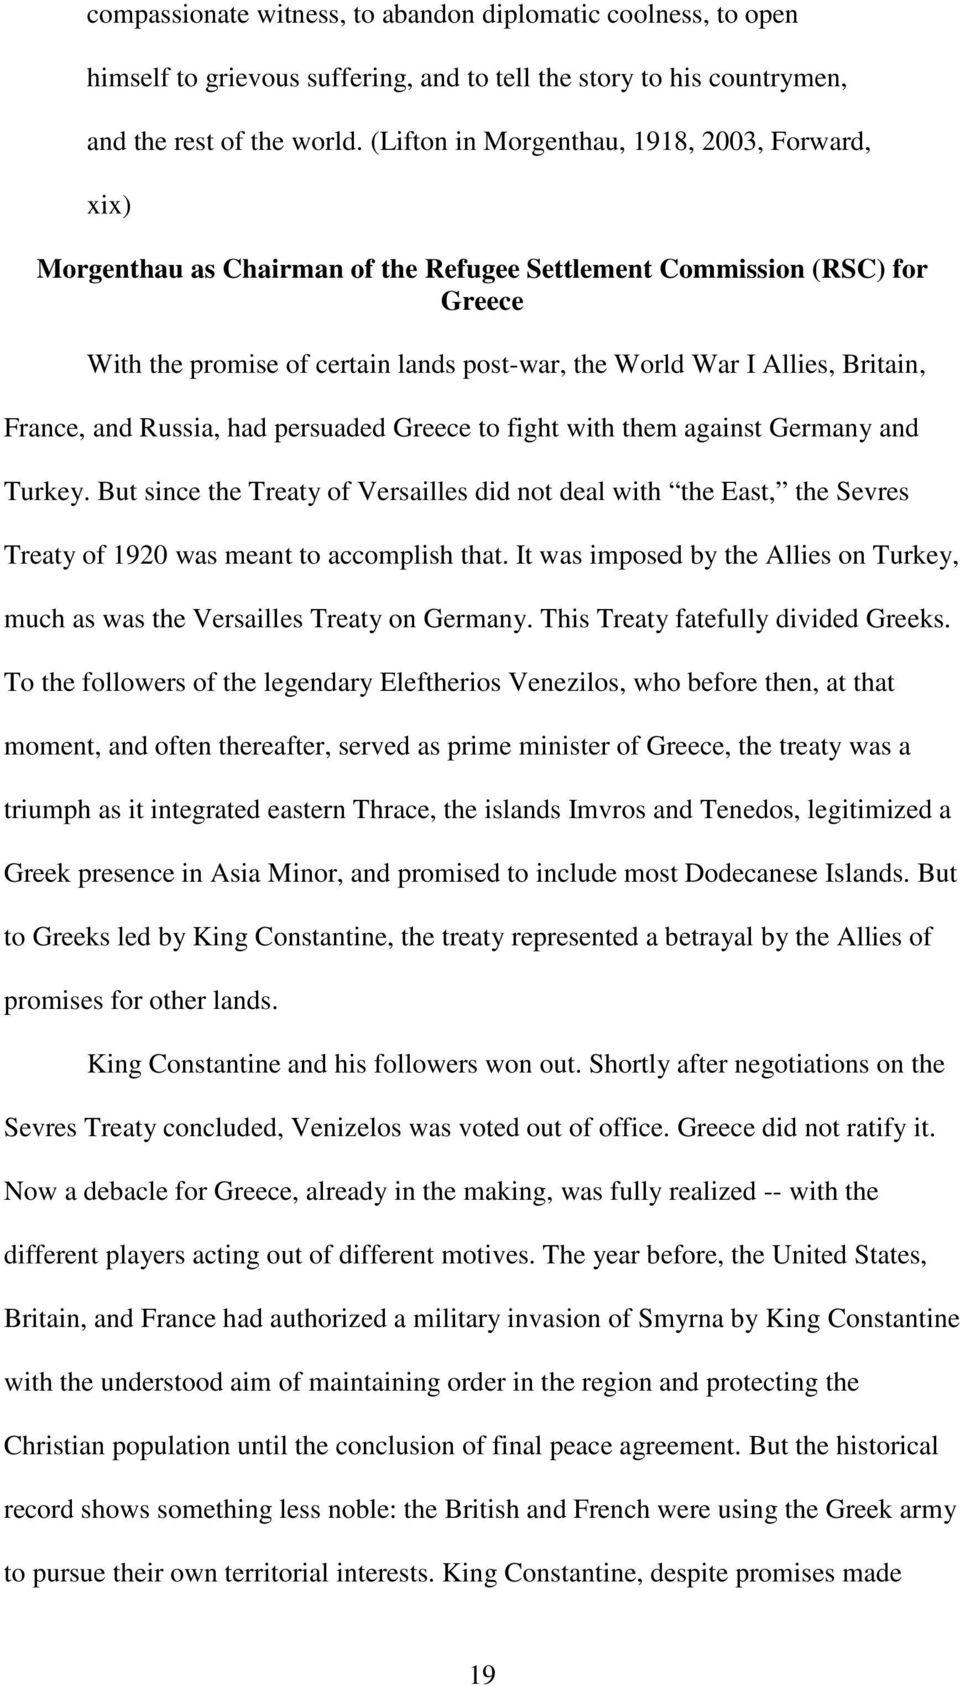 Britain, France, and Russia, had persuaded Greece to fight with them against Germany and Turkey.